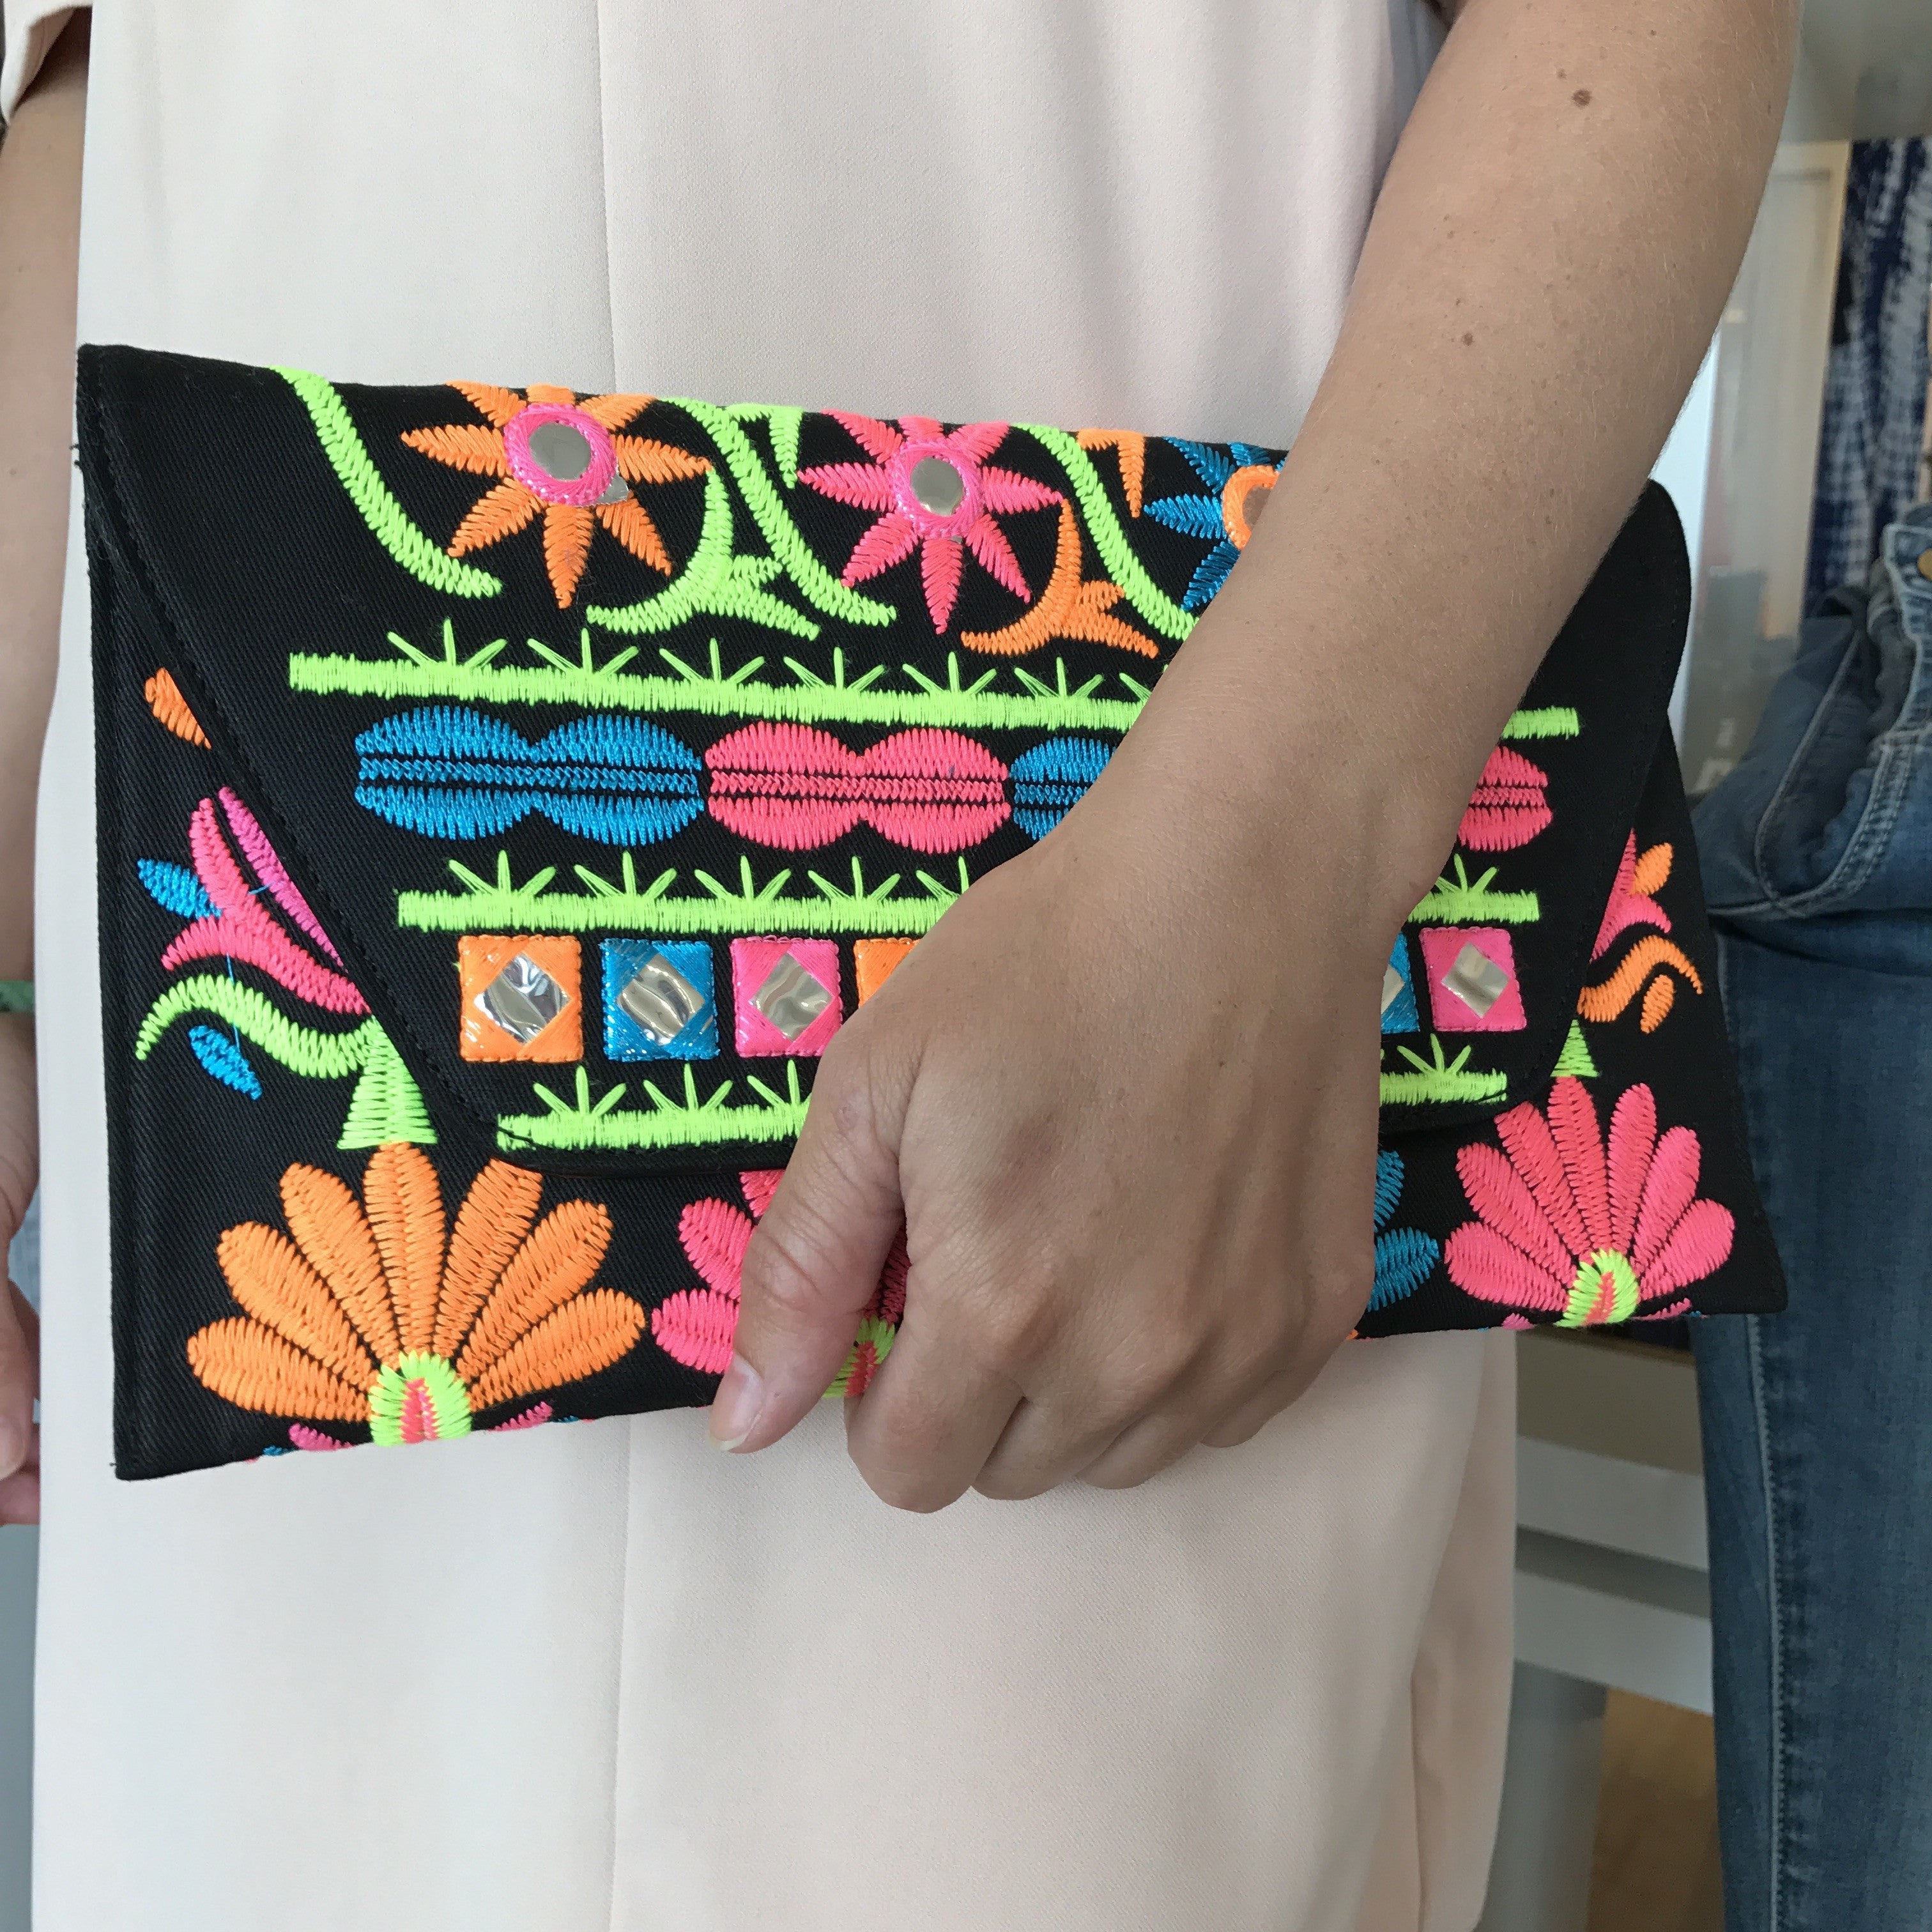 Neon Embroidered Envalope Clutch or Crossbody Bag at Charm Boutique